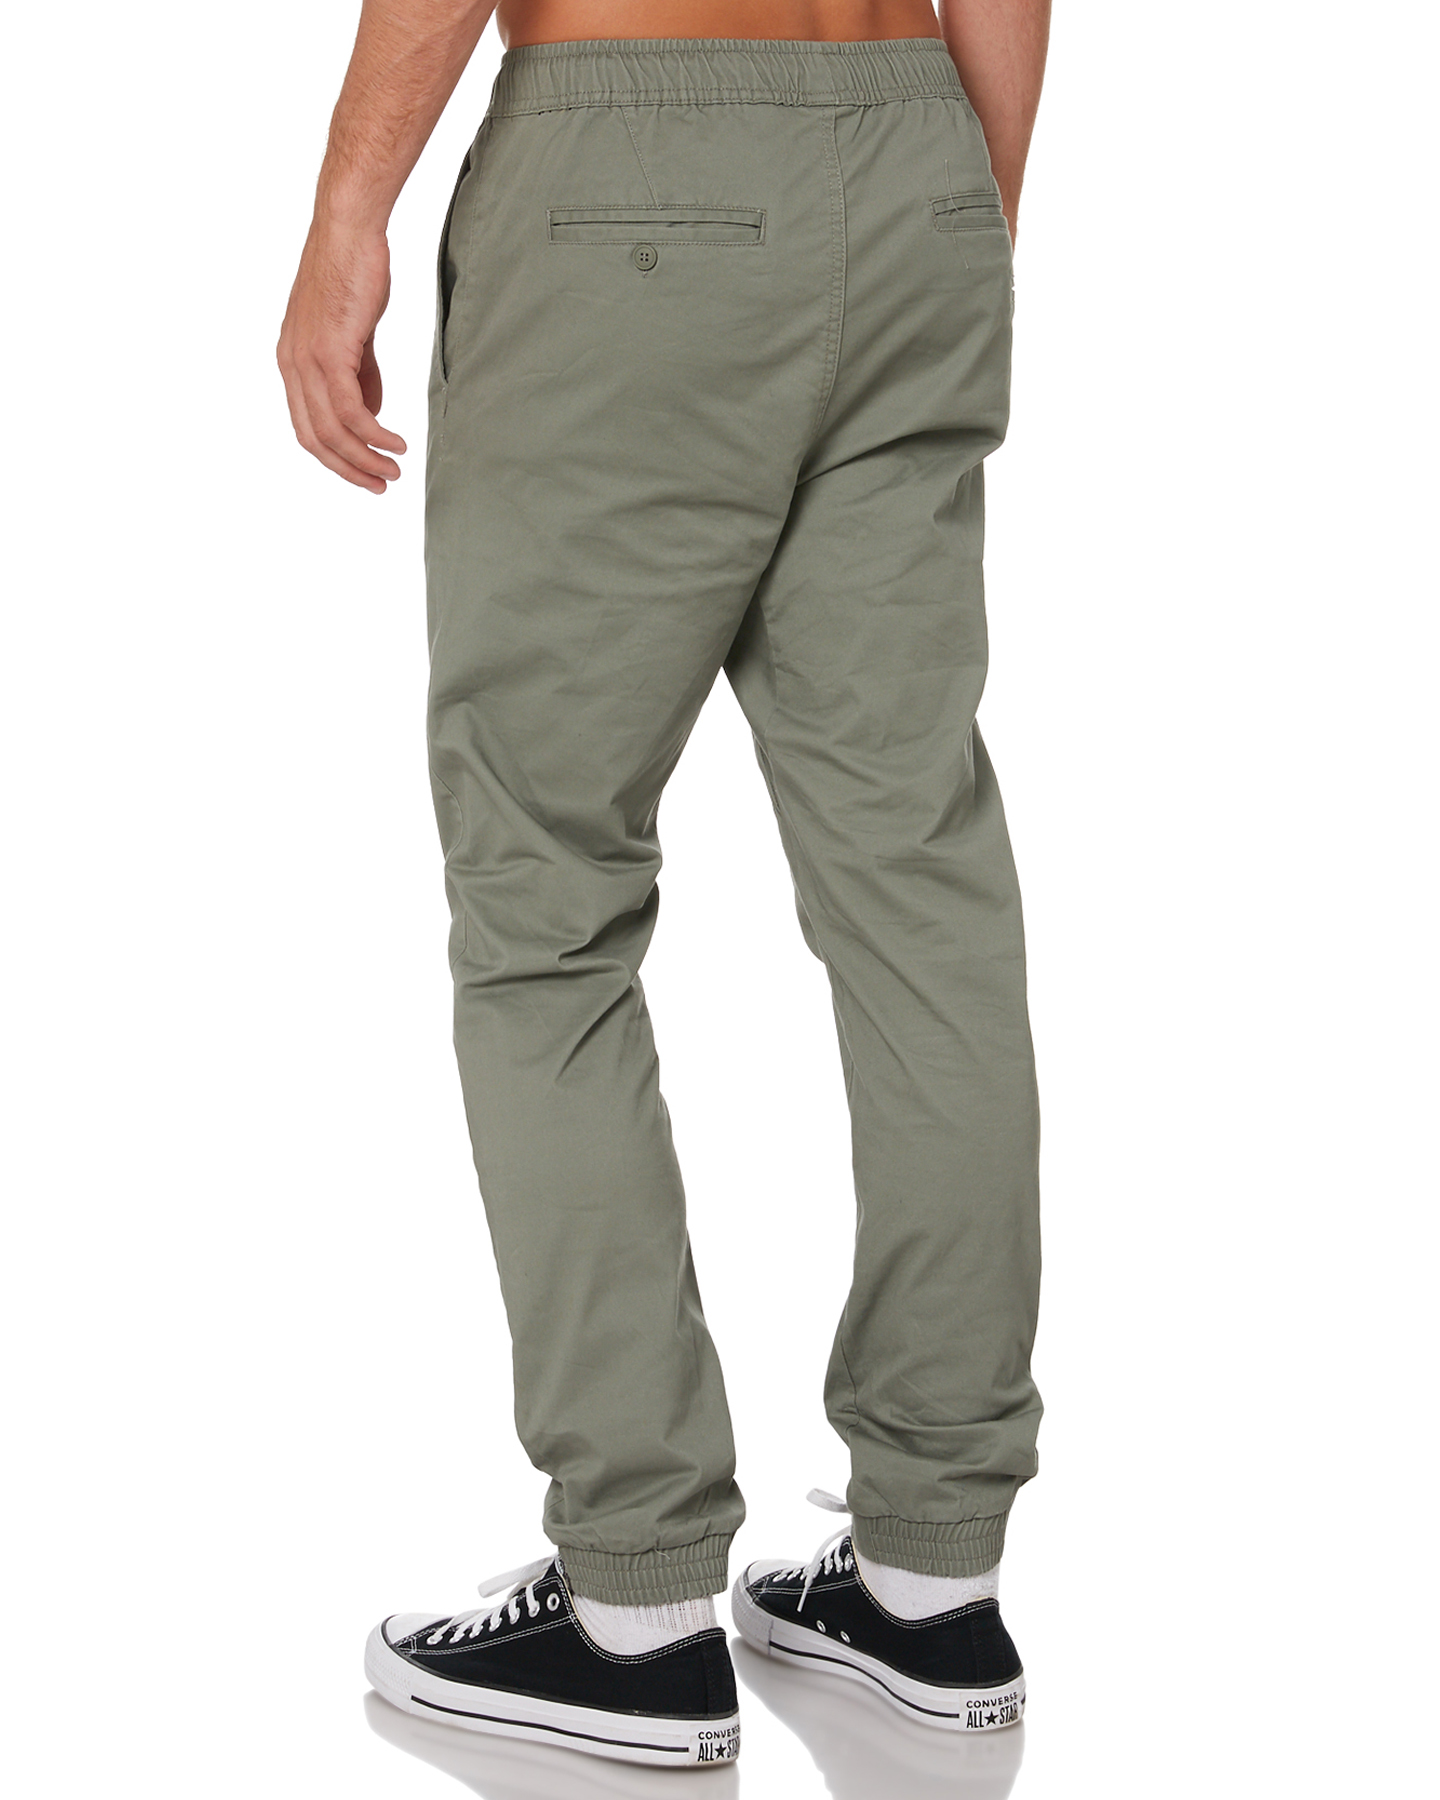 New-Swell-Men-039-s-Blunt-Cargo-Mens-Jogger-Pant-Cotton-Elastane-Green thumbnail 18